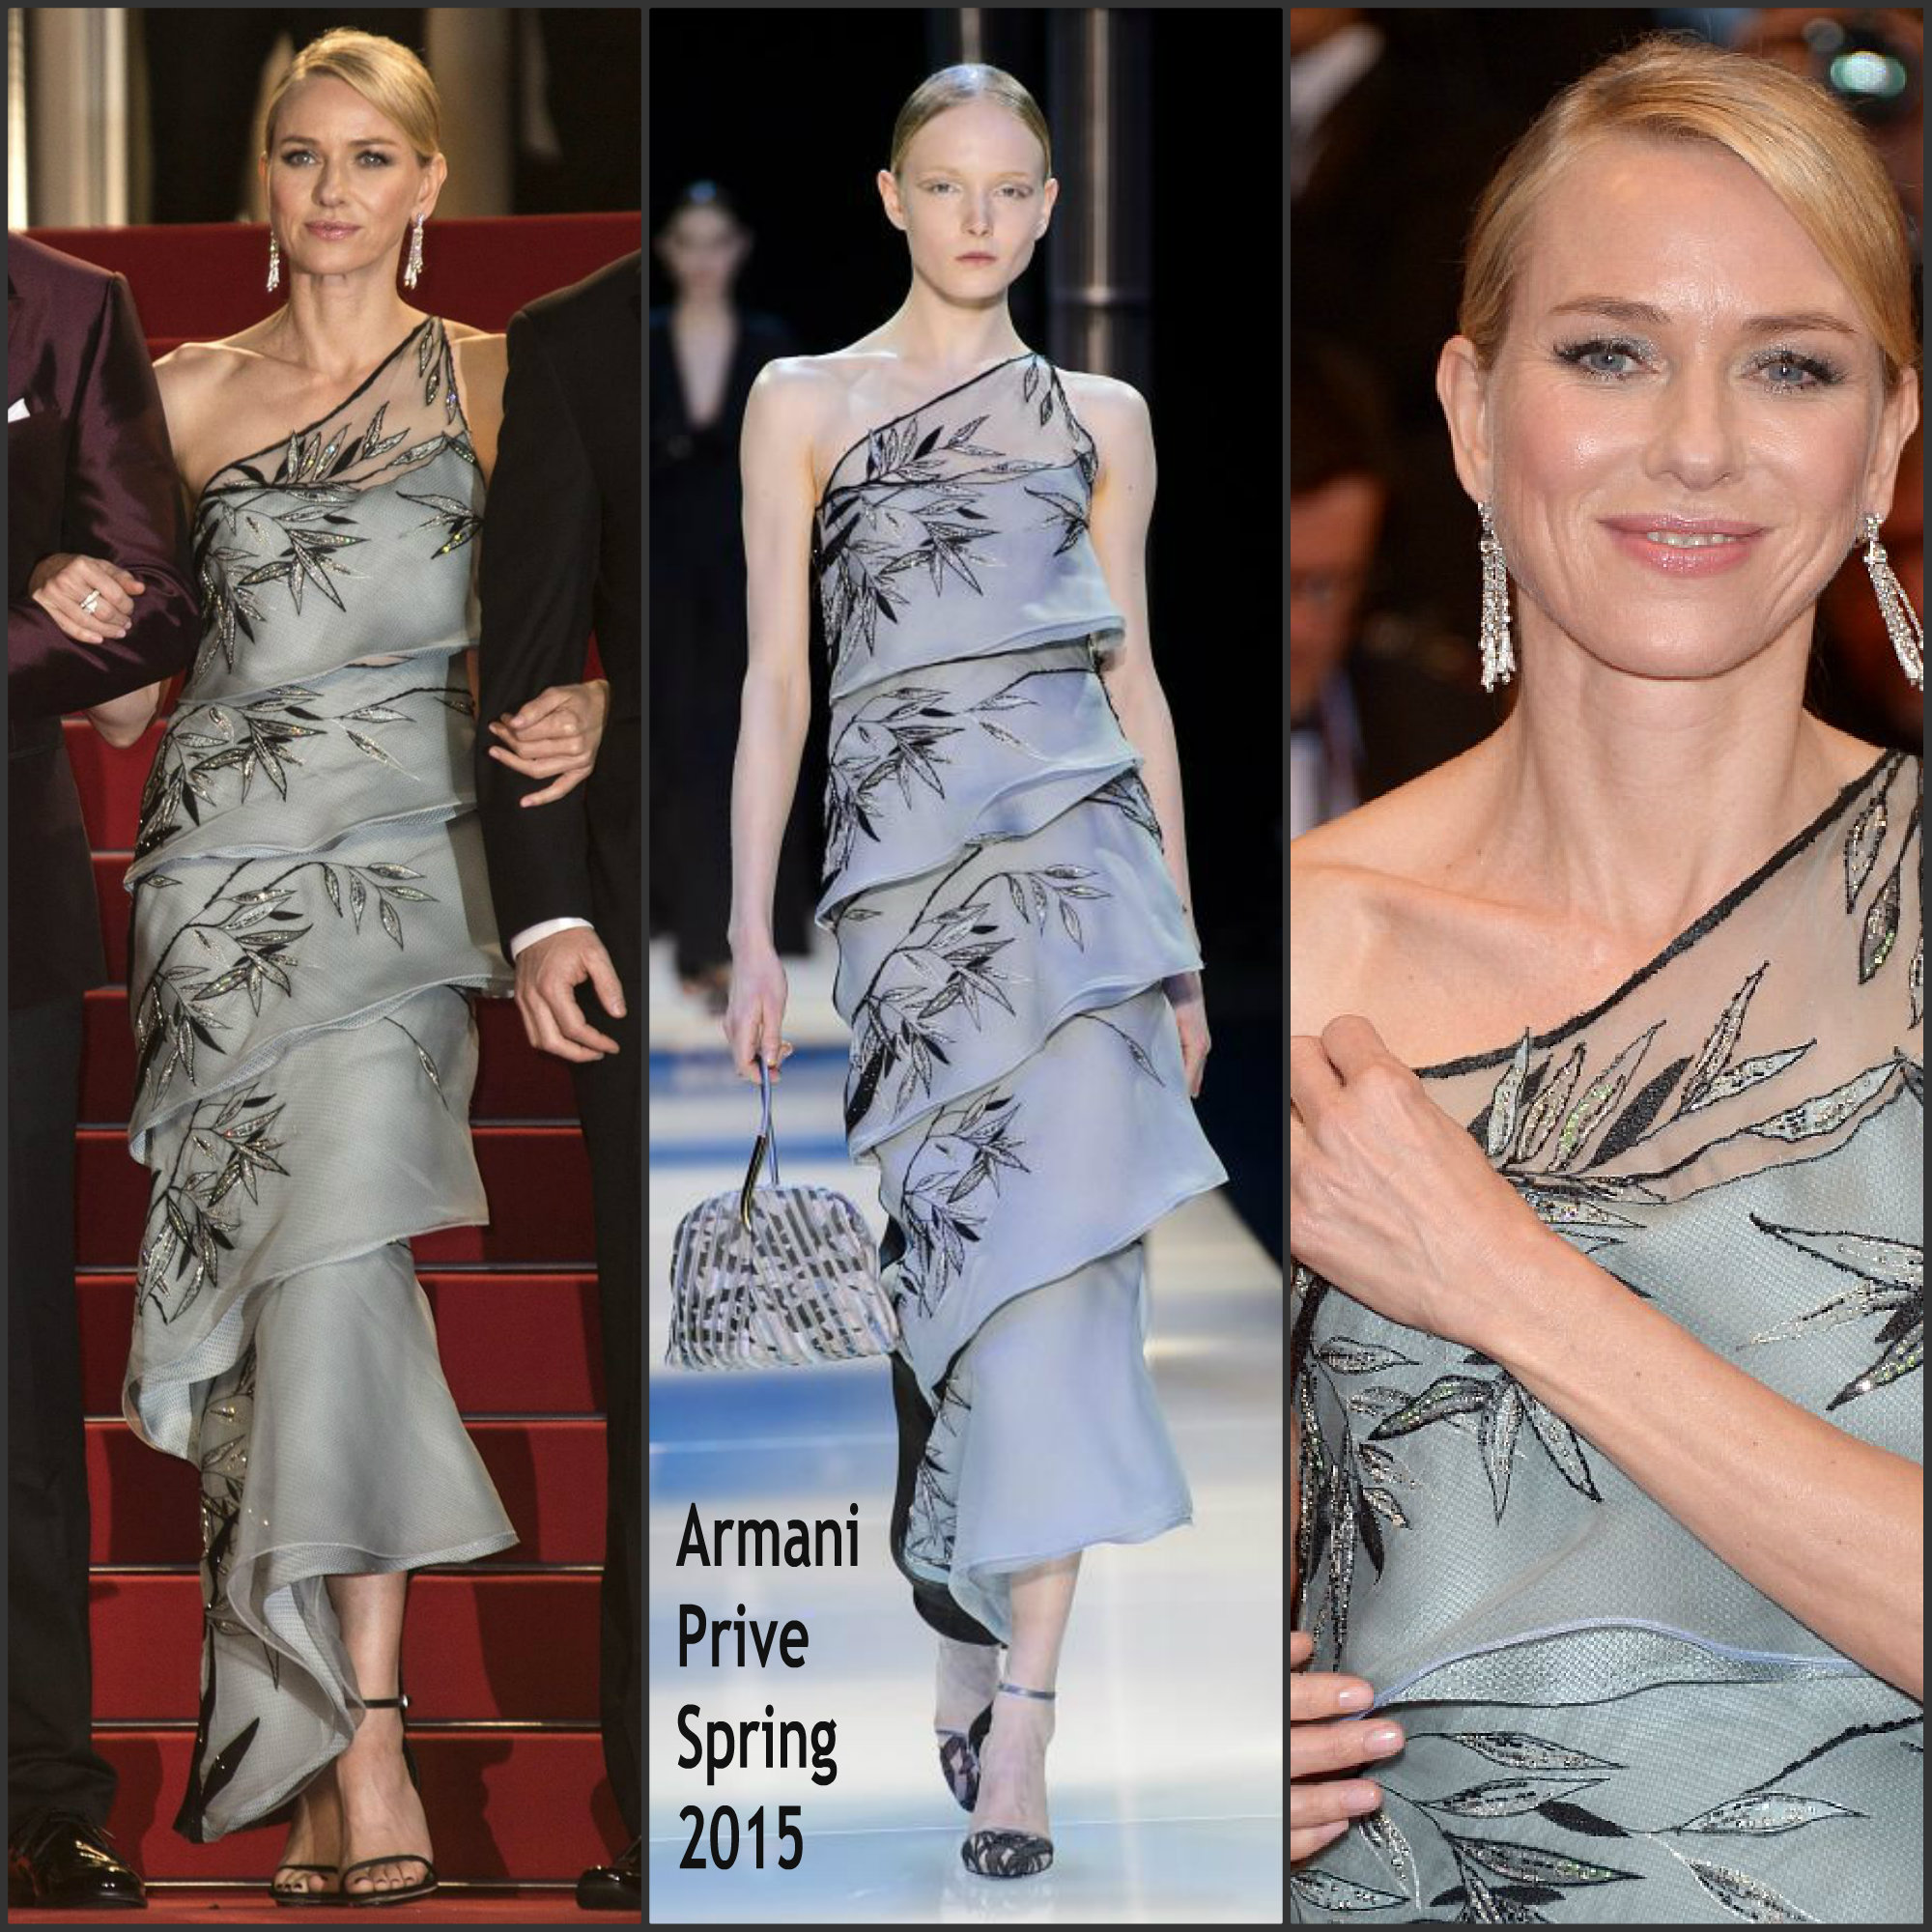 naomi-watts-in-armai-privesea-of-trees-cannes-film-festival-premiere